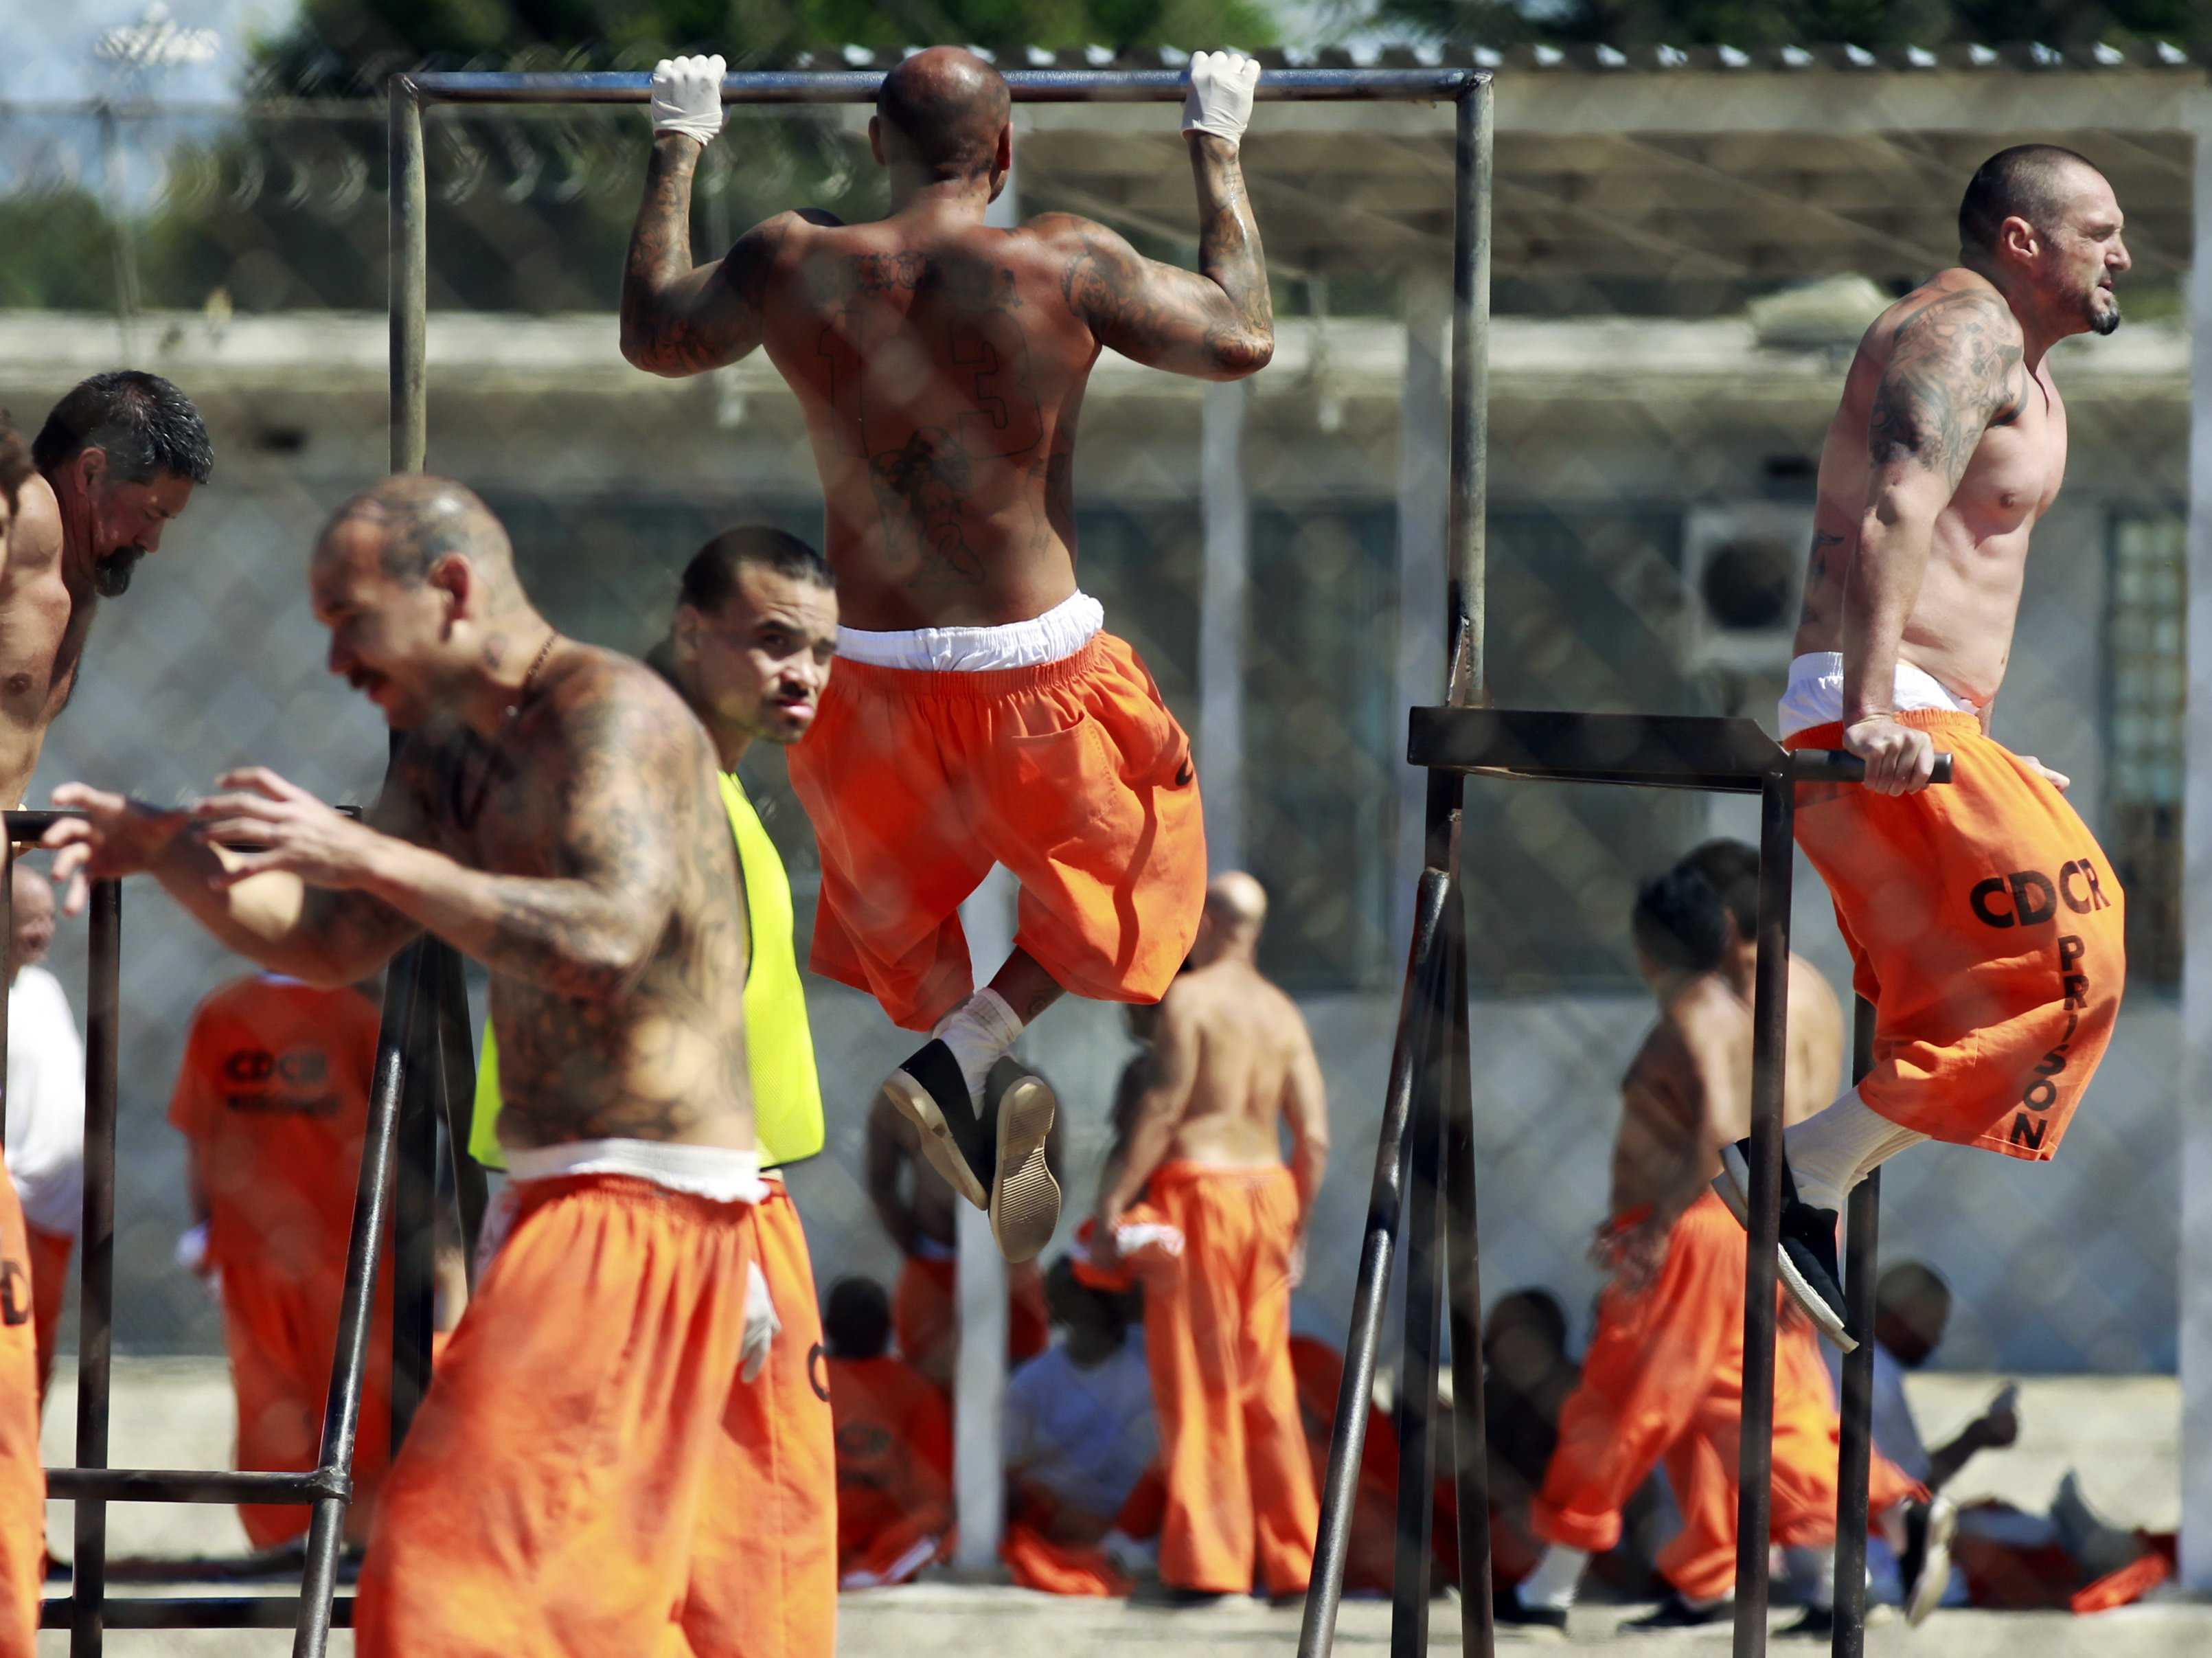 prisoners-exercising An Ex-Con Reveals the Eight Most Important Rules For Surviving in Prison